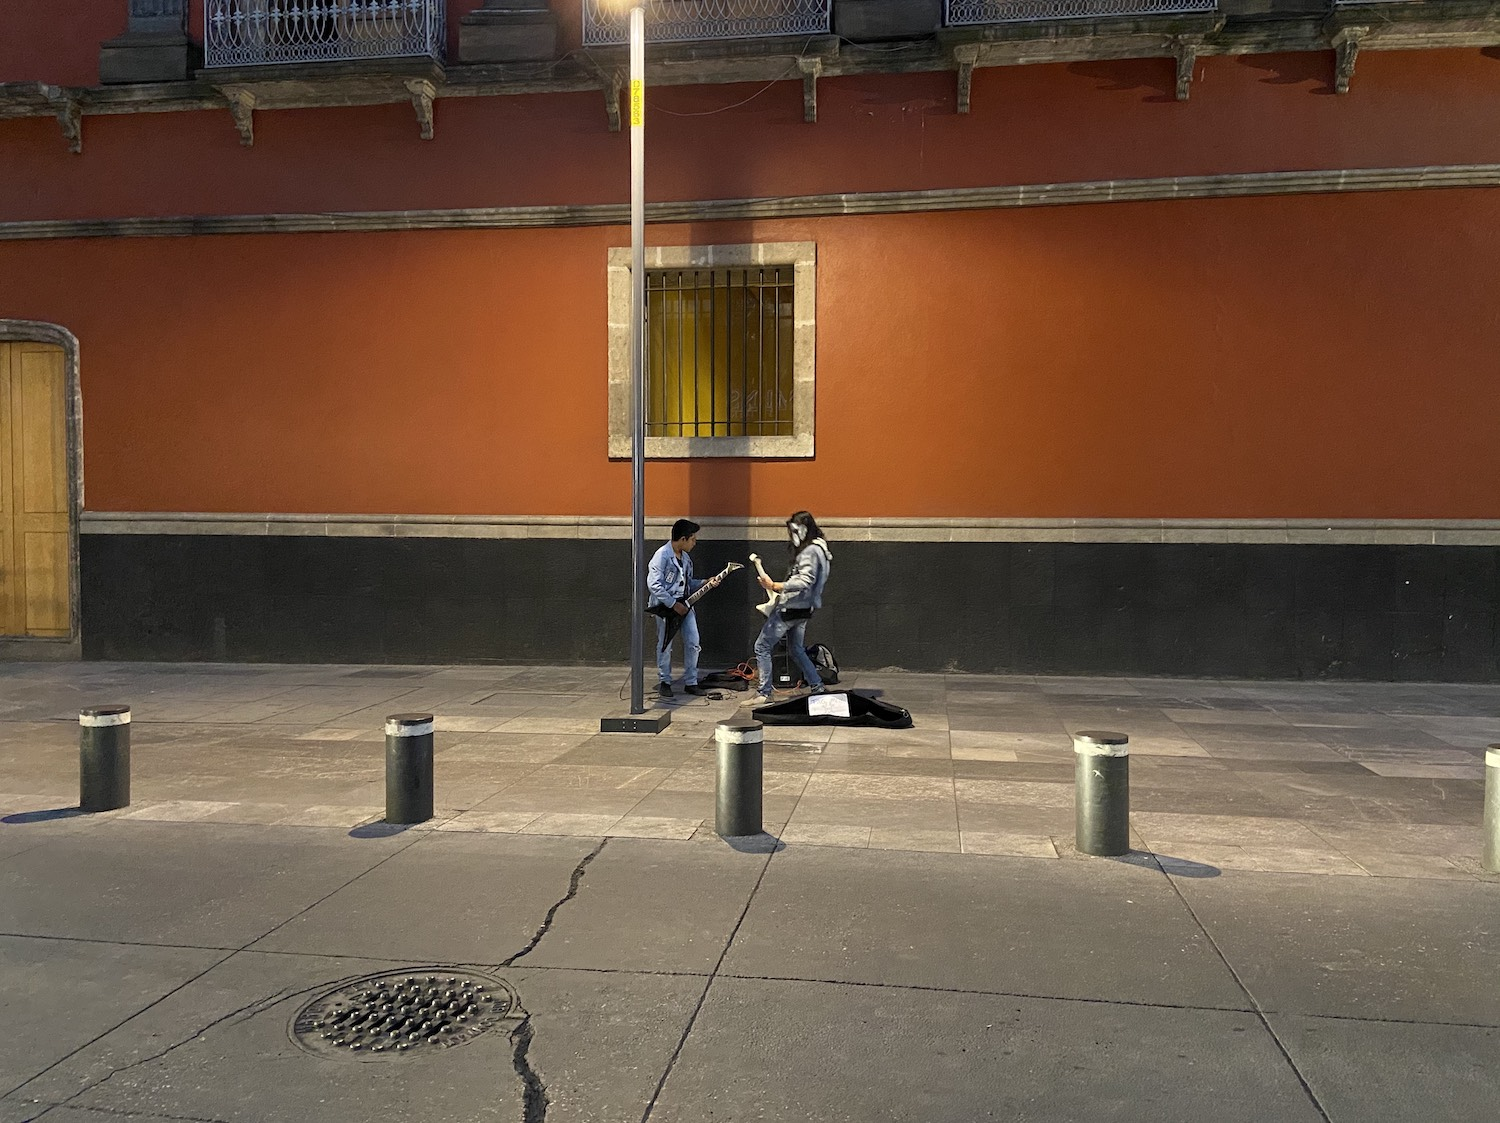 Young street musicians in Mexico City.